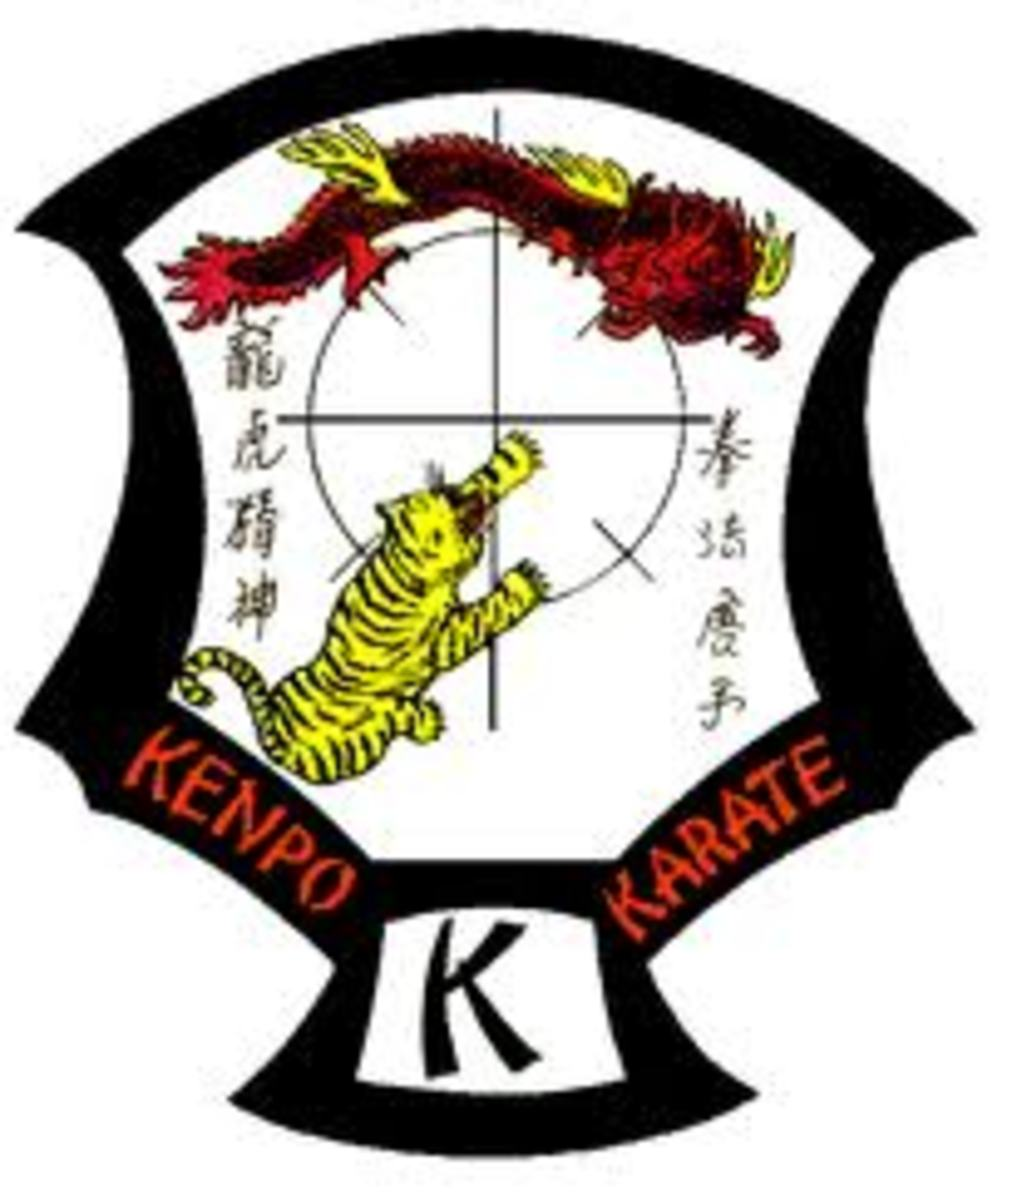 The Kenpo Crest. In the middle of the crest is a circle with lines running vertically and horizontally through, and shorter lines along 45-degree angles on the circle. These show angles of attack and defense, clearly also showing geometric principles